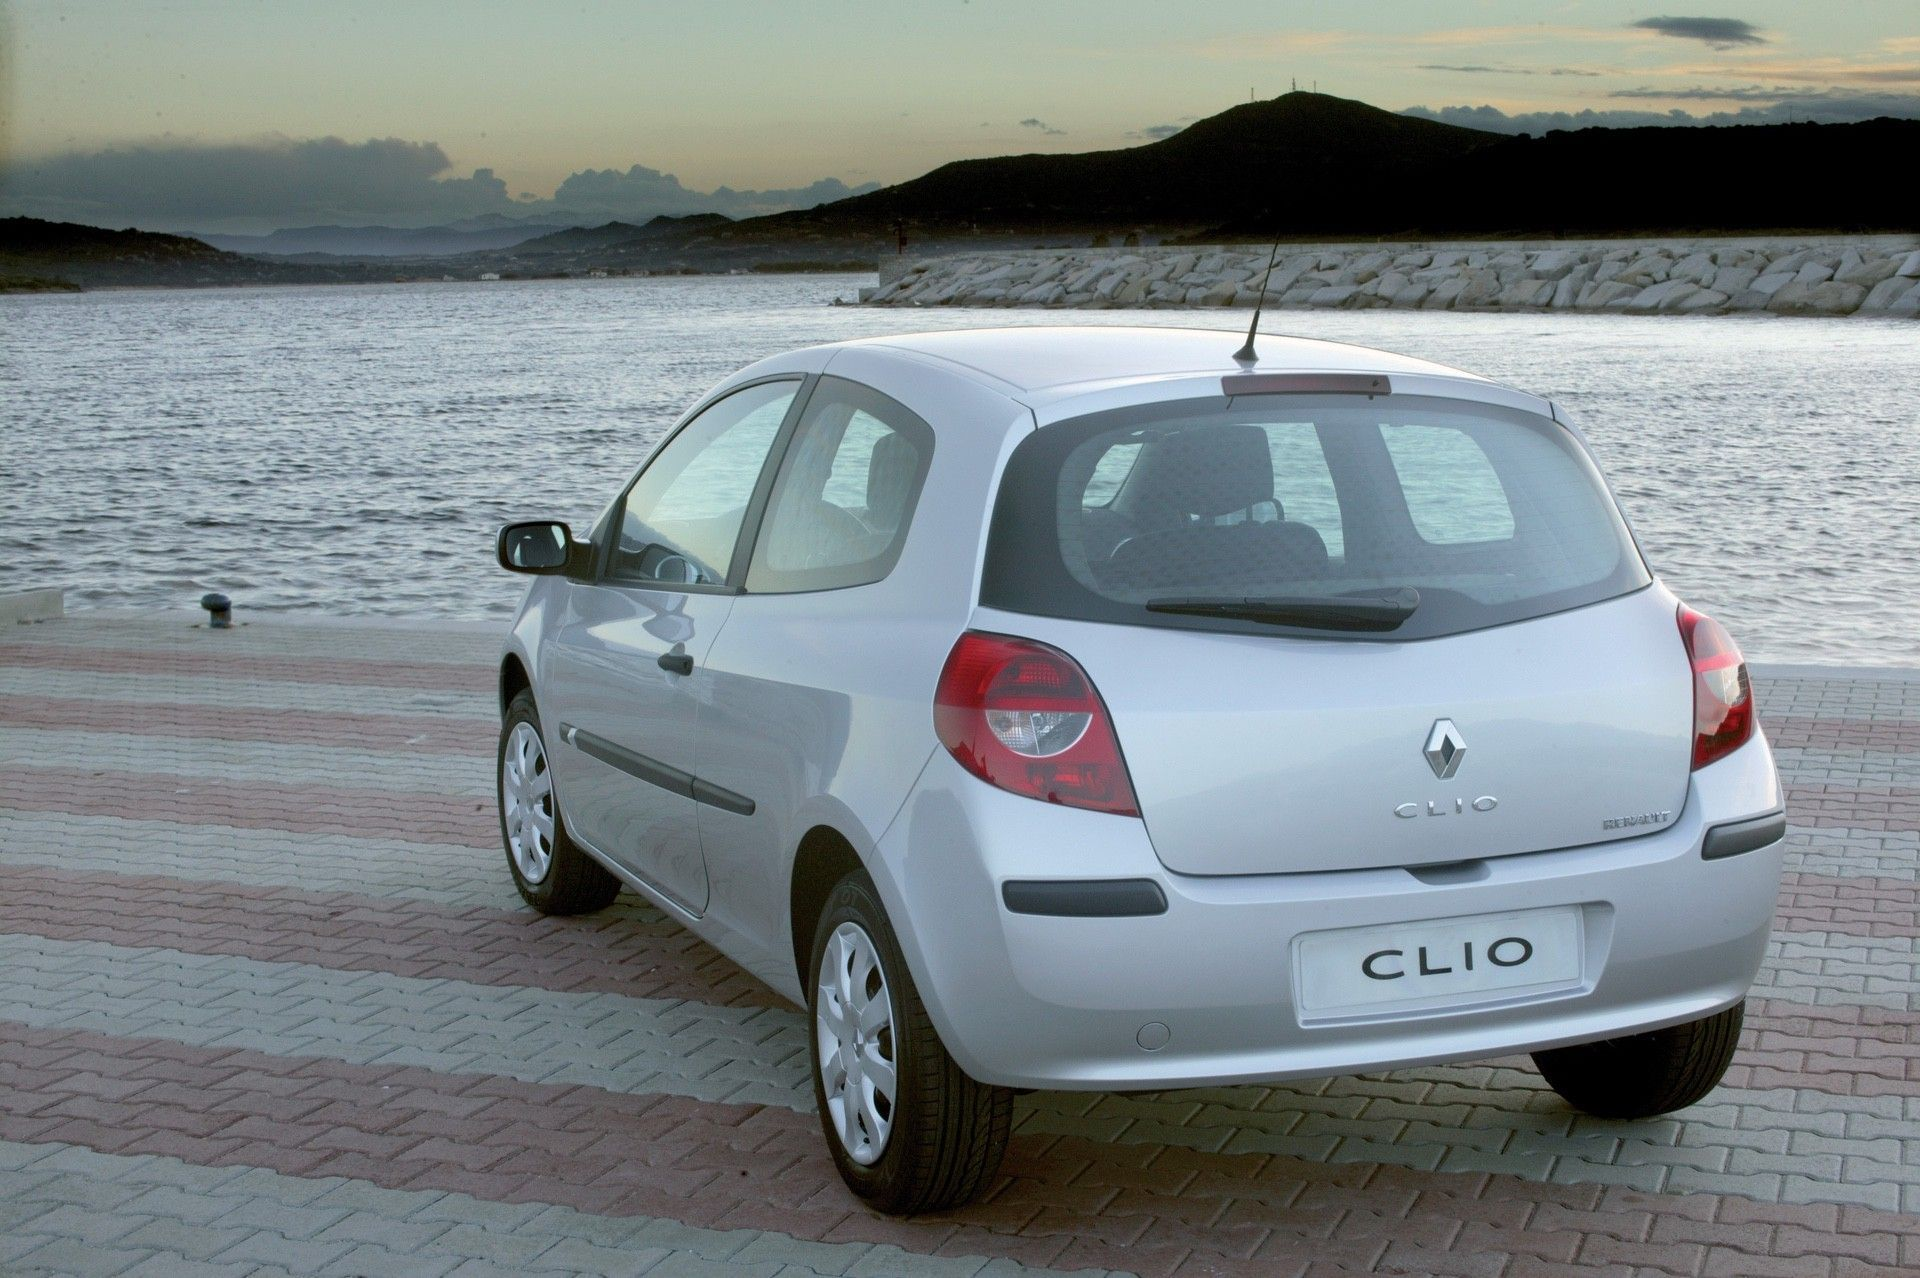 2020-30-years-of-Renault-CLIO-Renault-CLIO-III-2005-2012-6